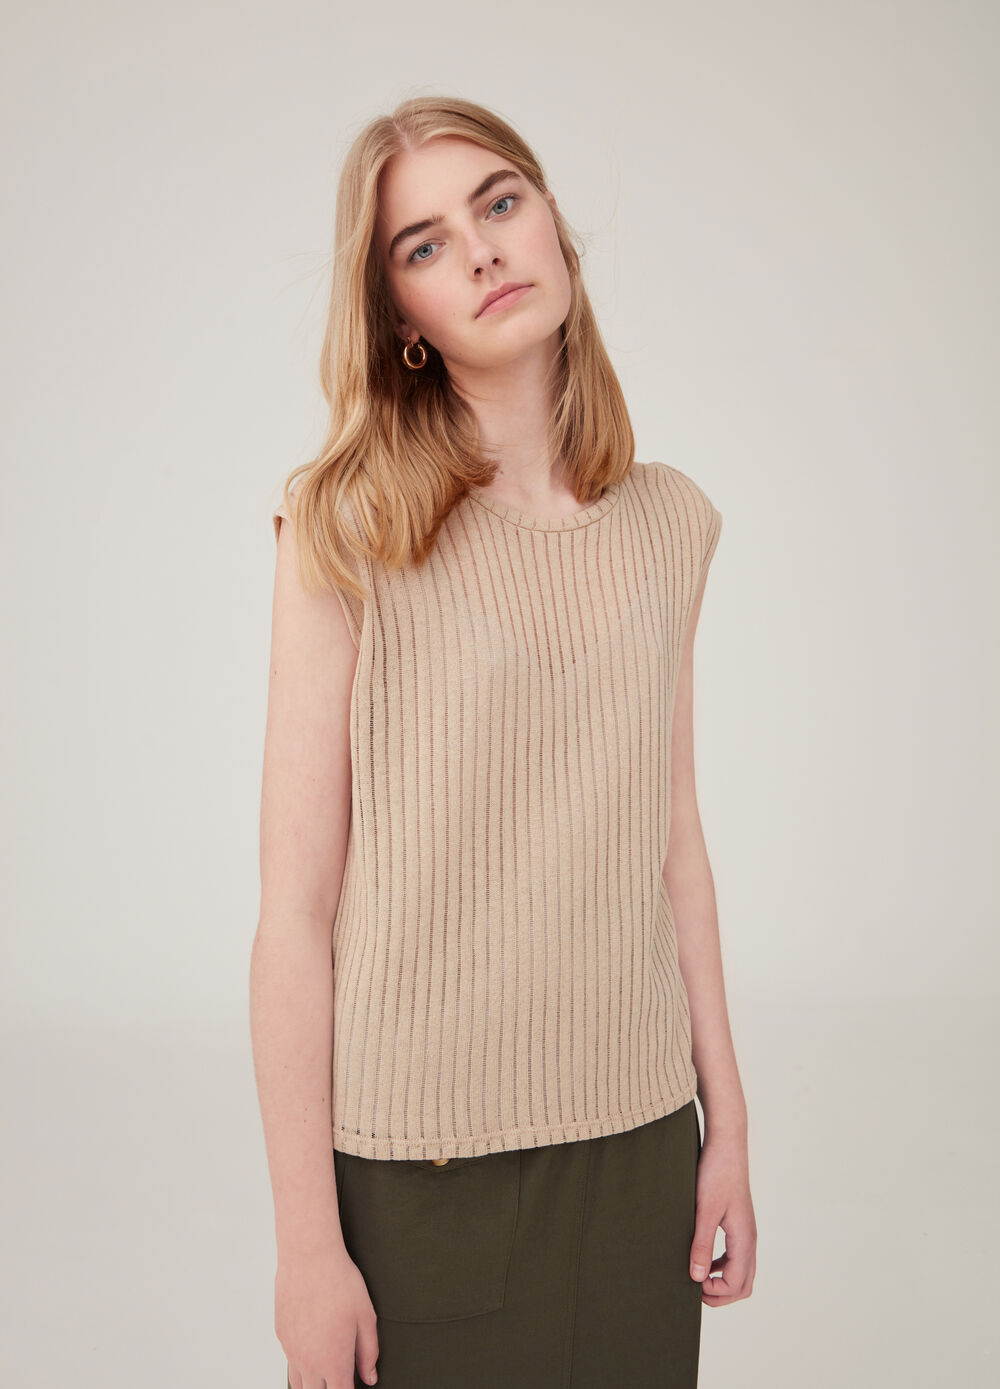 Solid colour top with openwork weave.